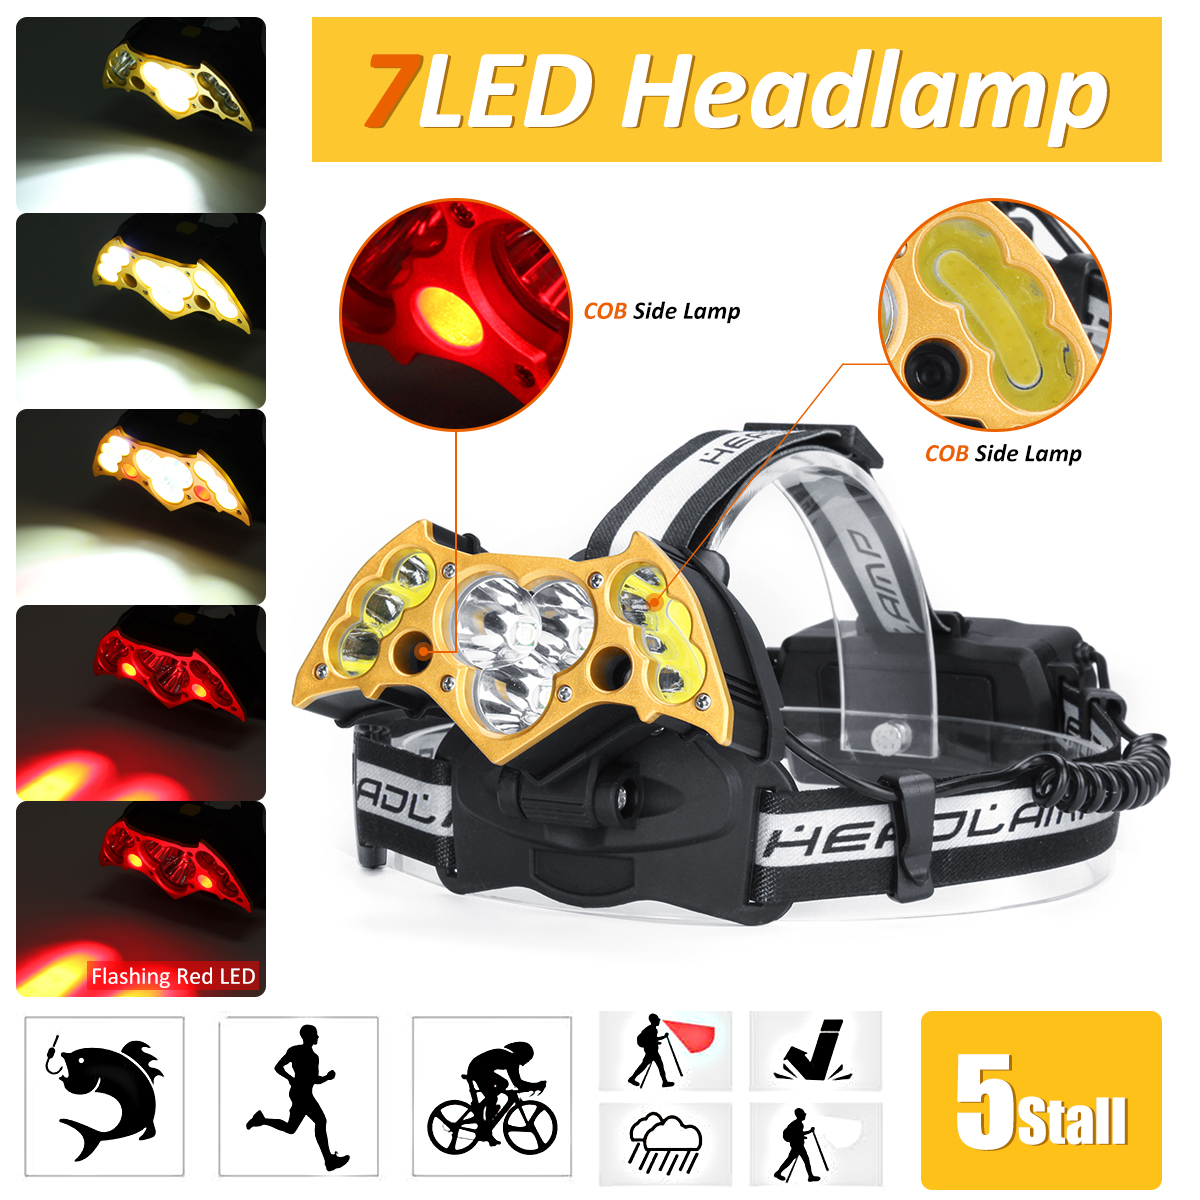 Smuxi Headlight 3*T6 + 2*COB + 2* Red LED Head Lamp USB Rechargeable Flashlight Torch Head Light Fishing Lanterna 18650 Battery cob led headlamp rechargeable cob headlight white red green lights 18650 battery head torch flashlight for hunting night fishing